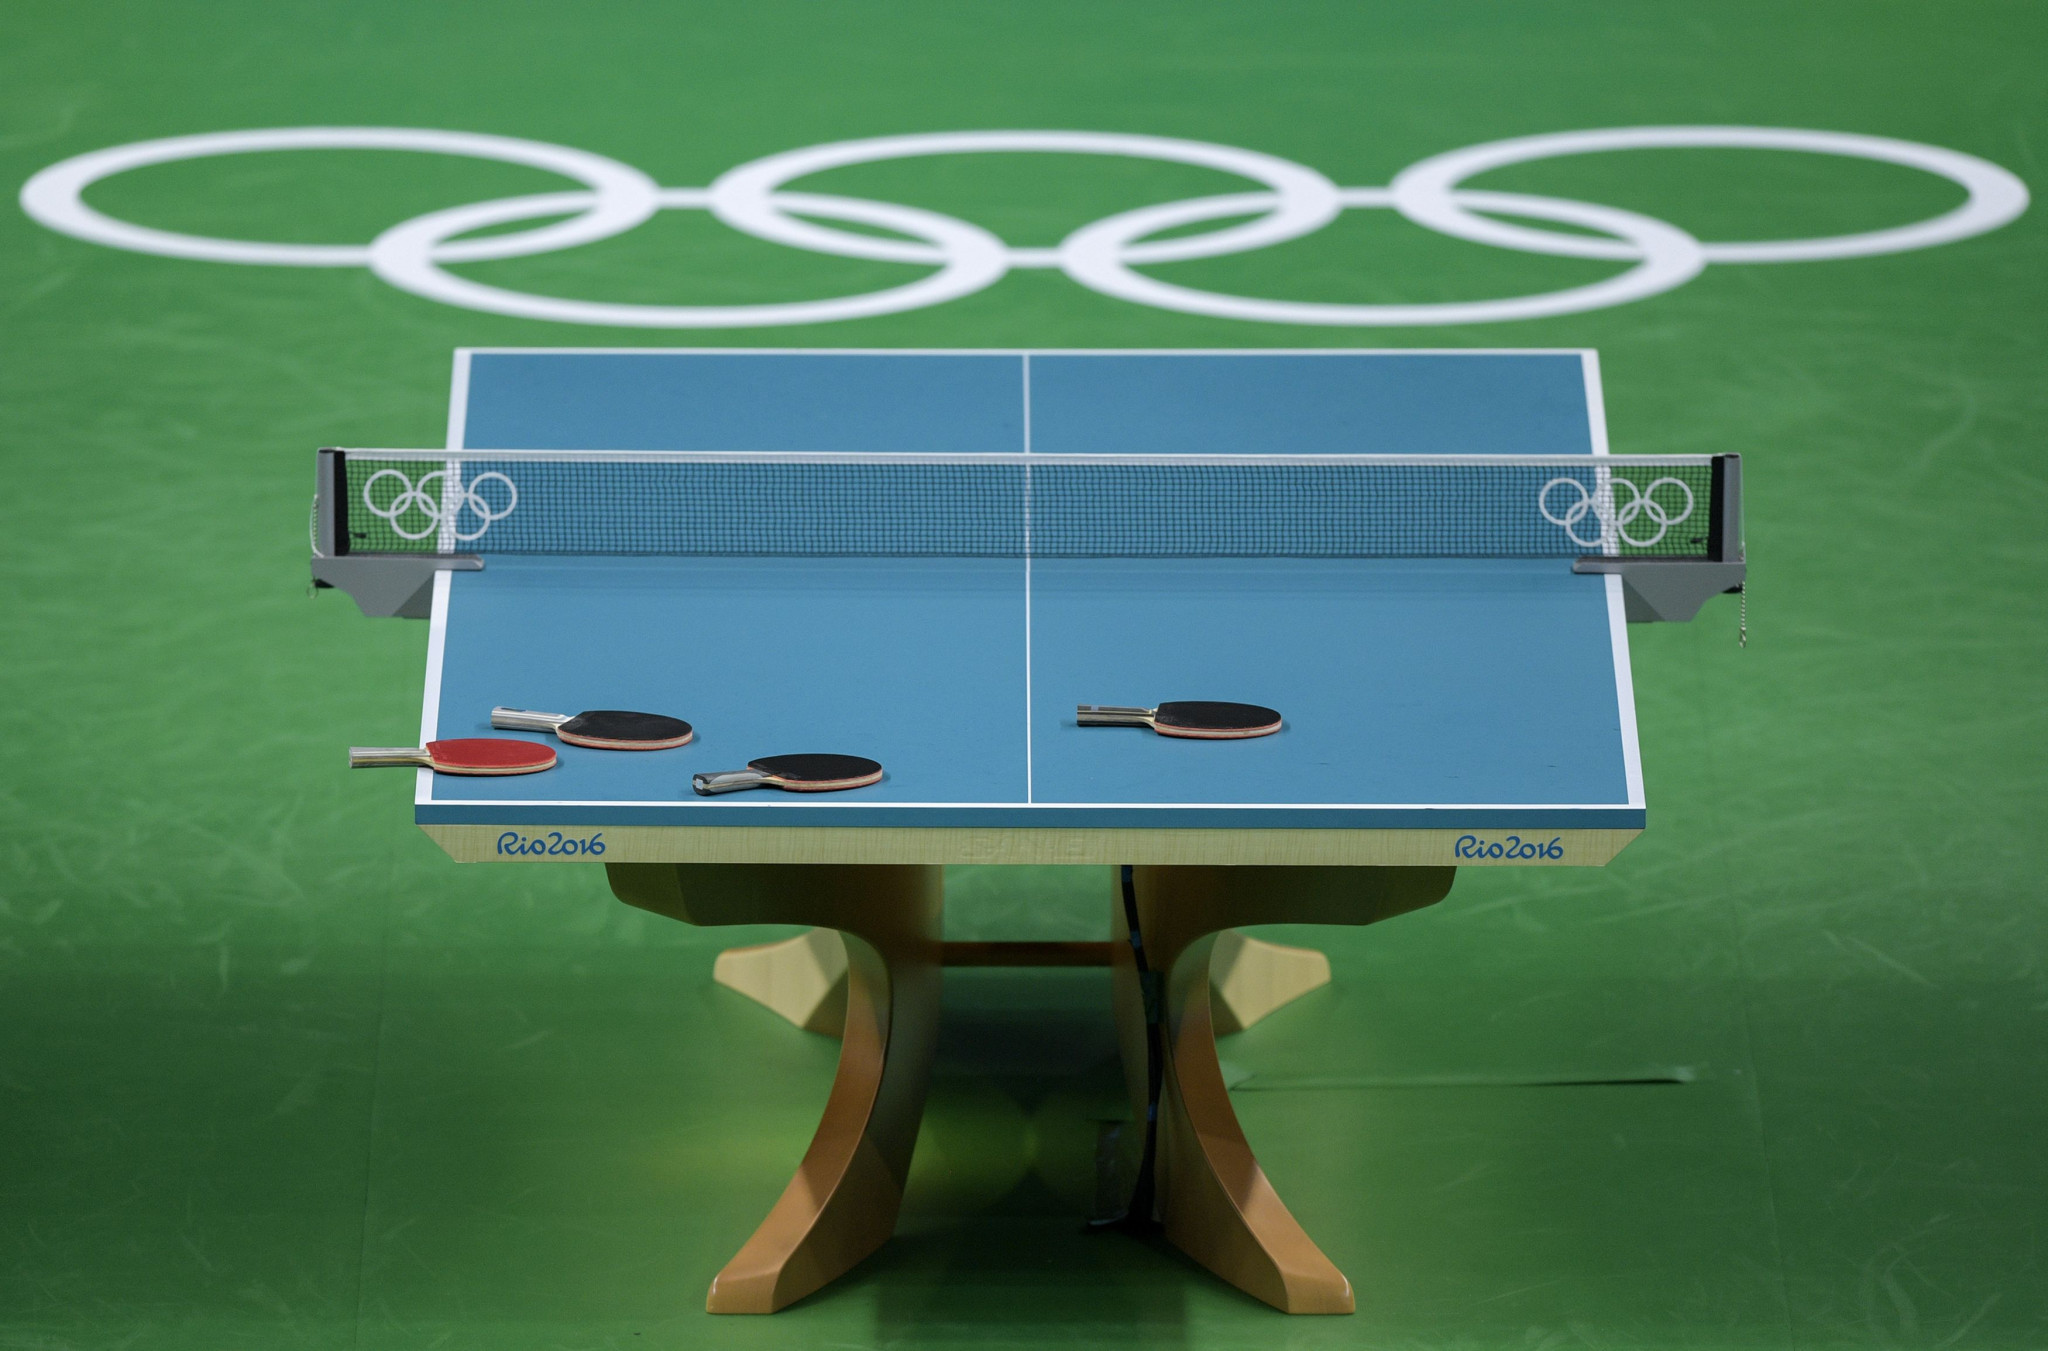 Different colour rubbers to be permitted in table tennis after Tokyo 2020